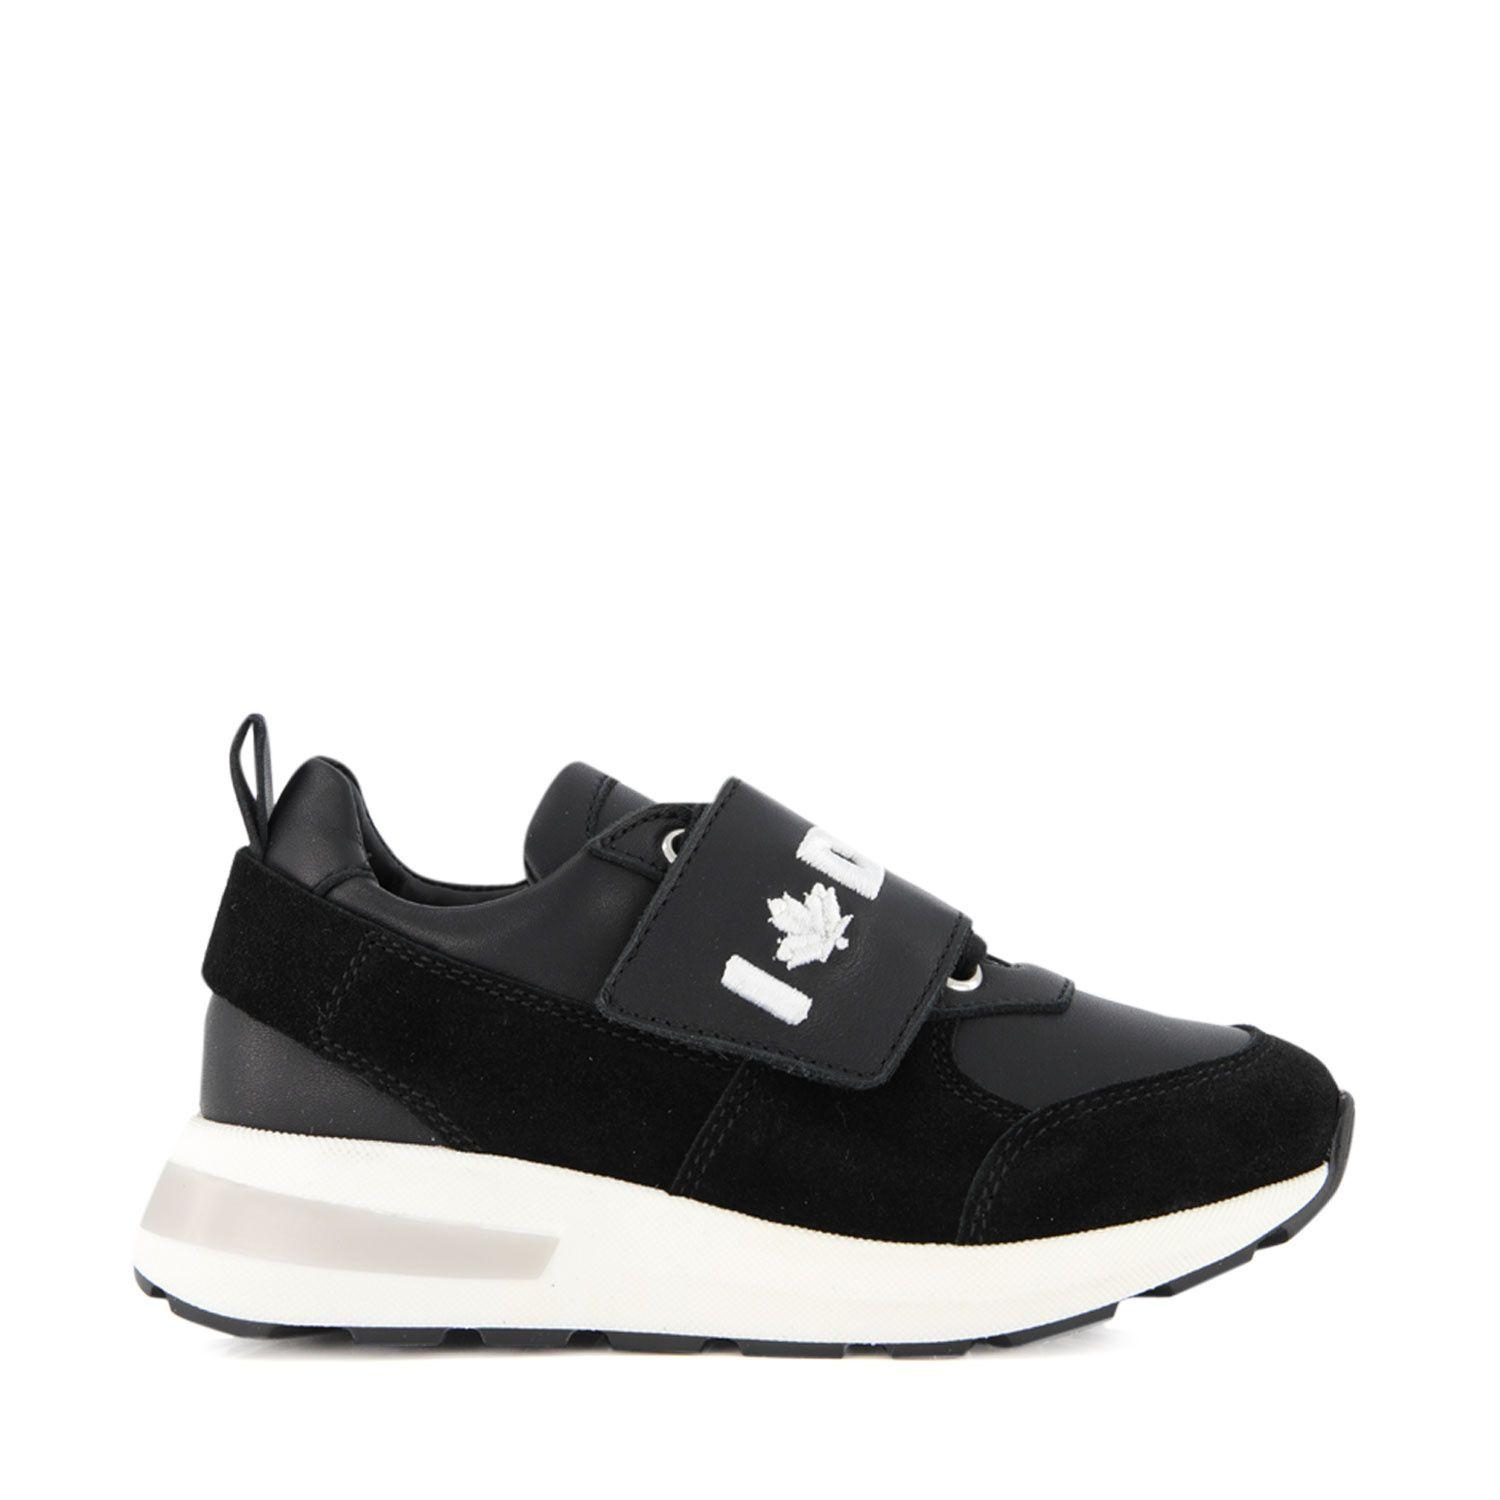 Picture of Dsquared2 65125 kids sneakers black